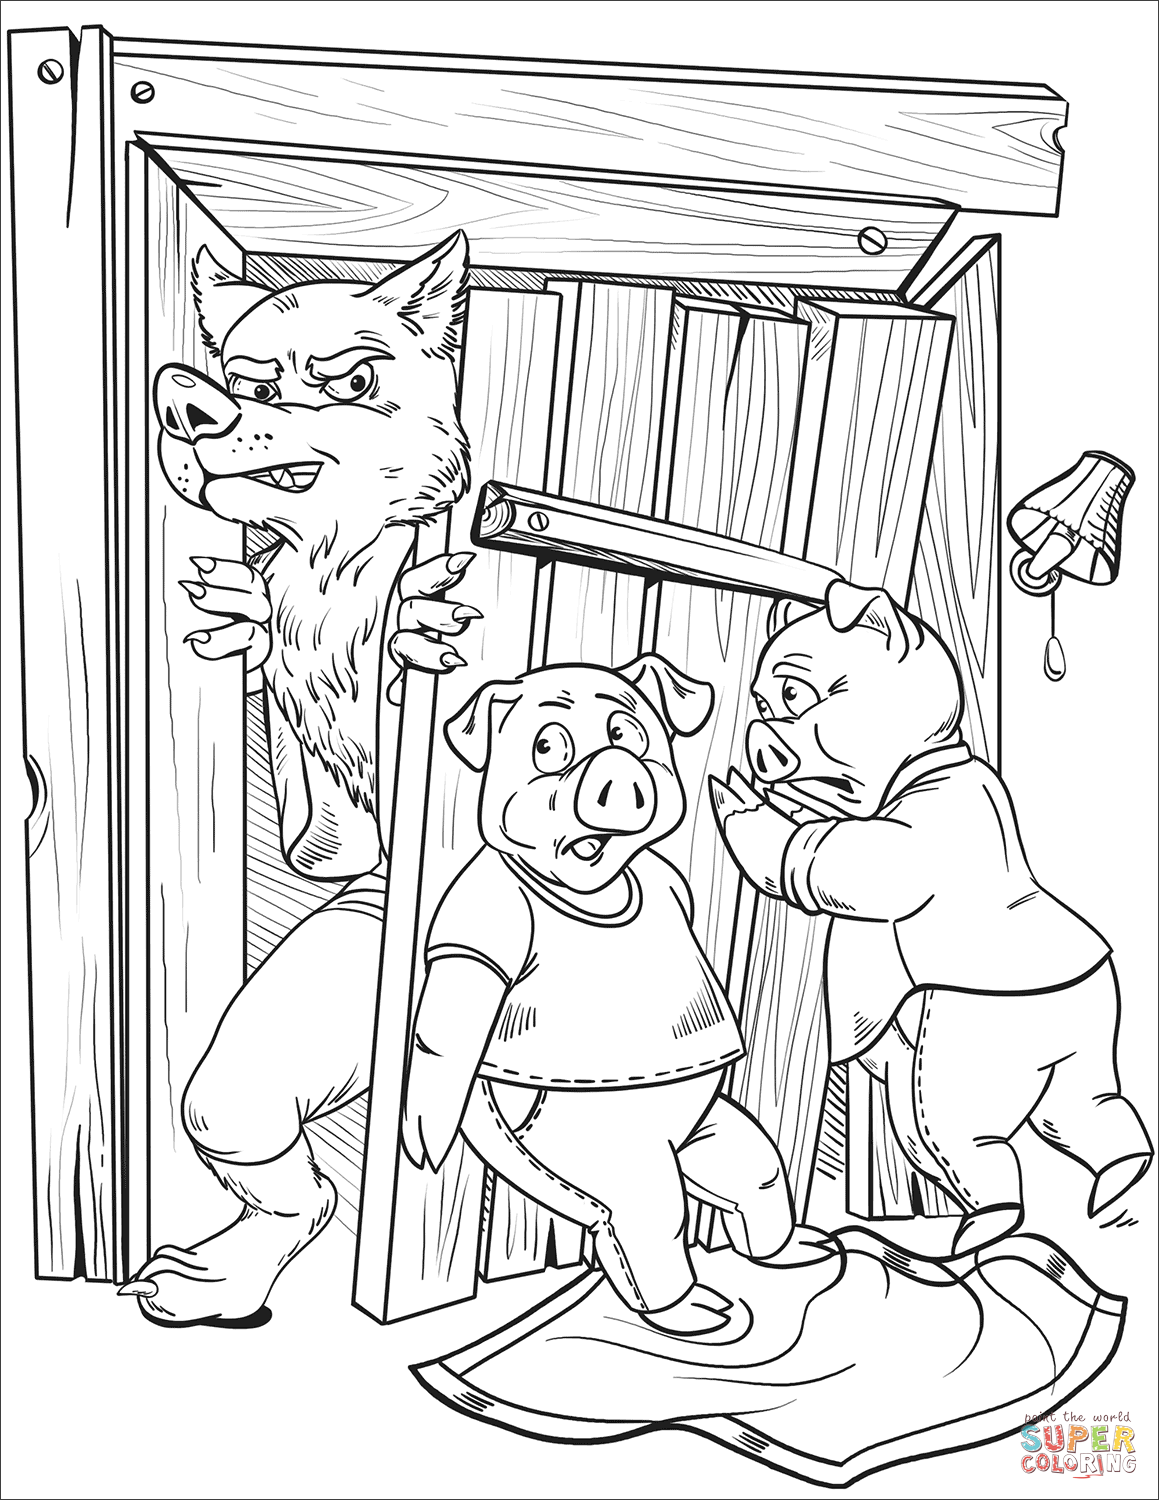 The Wolf Breaks the Wood House of Patty Pig coloring page